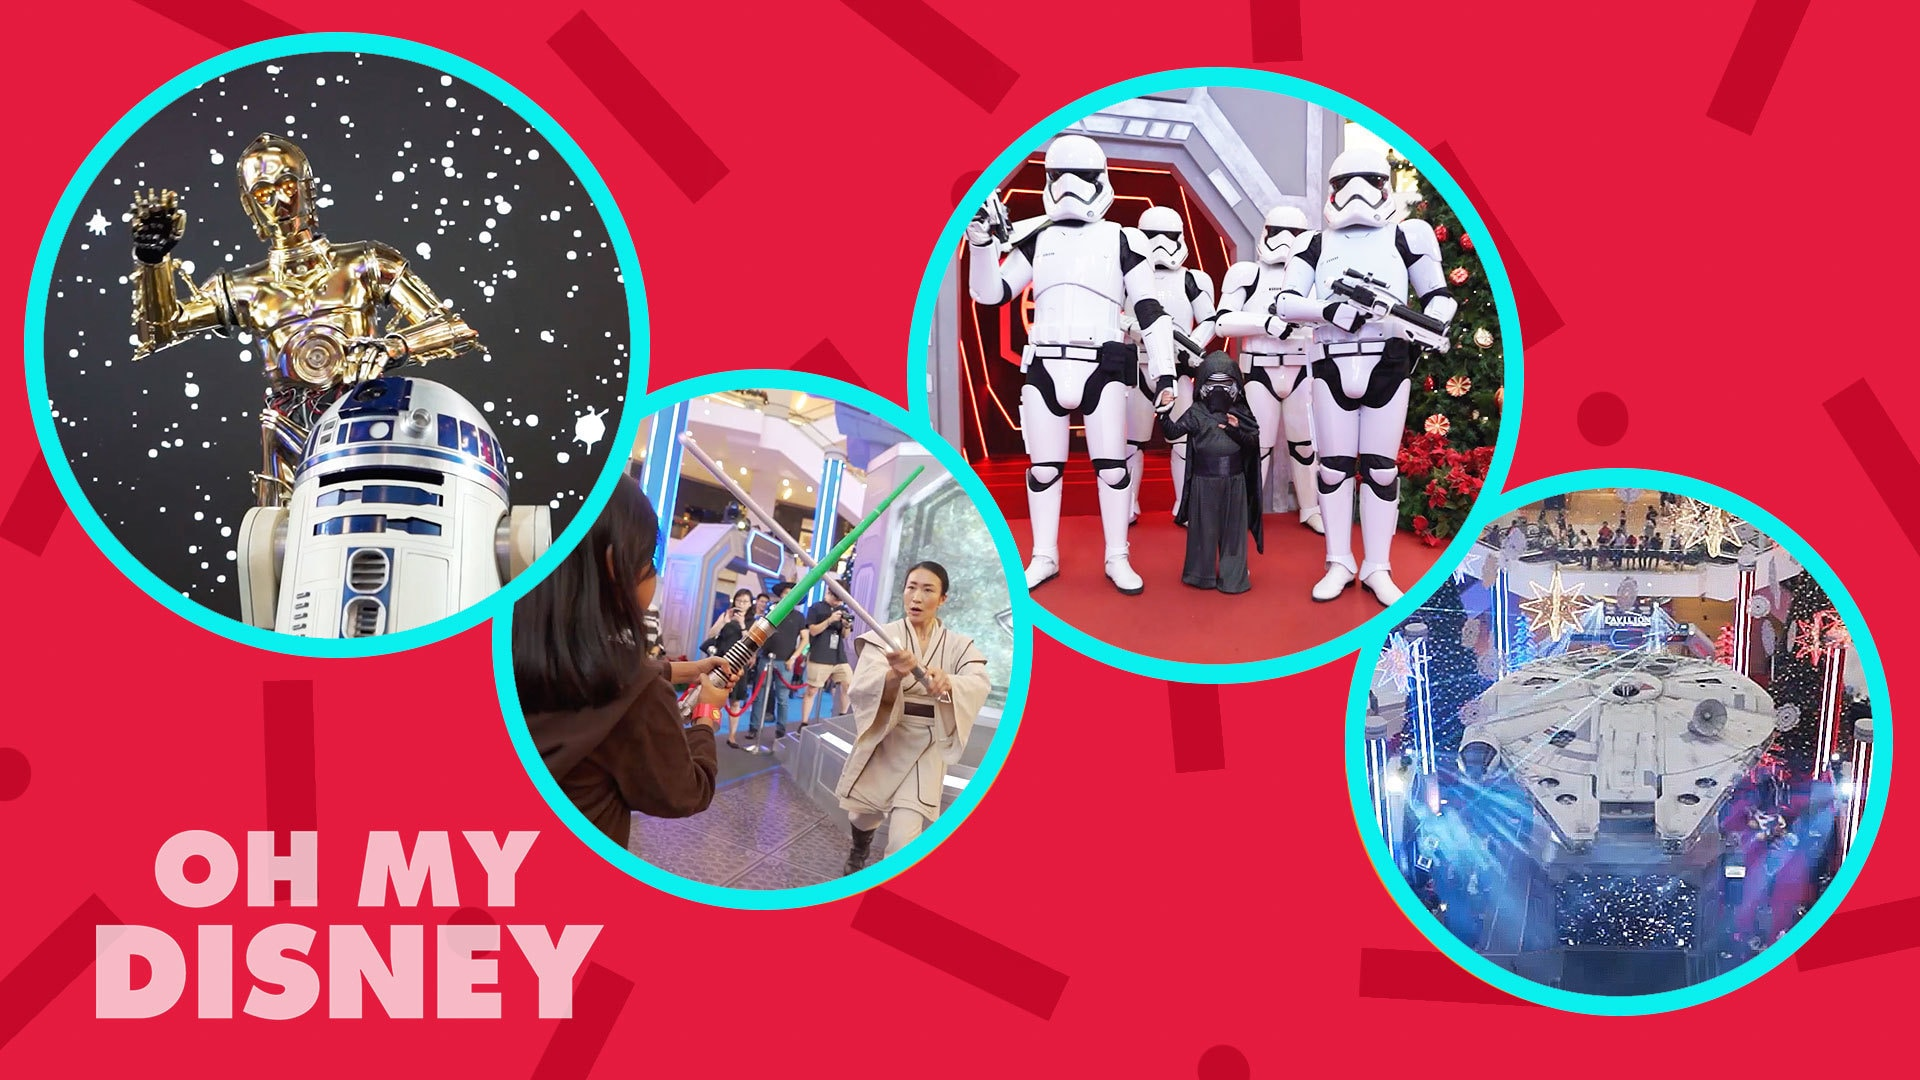 Disney Insider: A Starry Christmas At Pavilion, Kl Featuring Star Wars: The Rise Of Skywalker